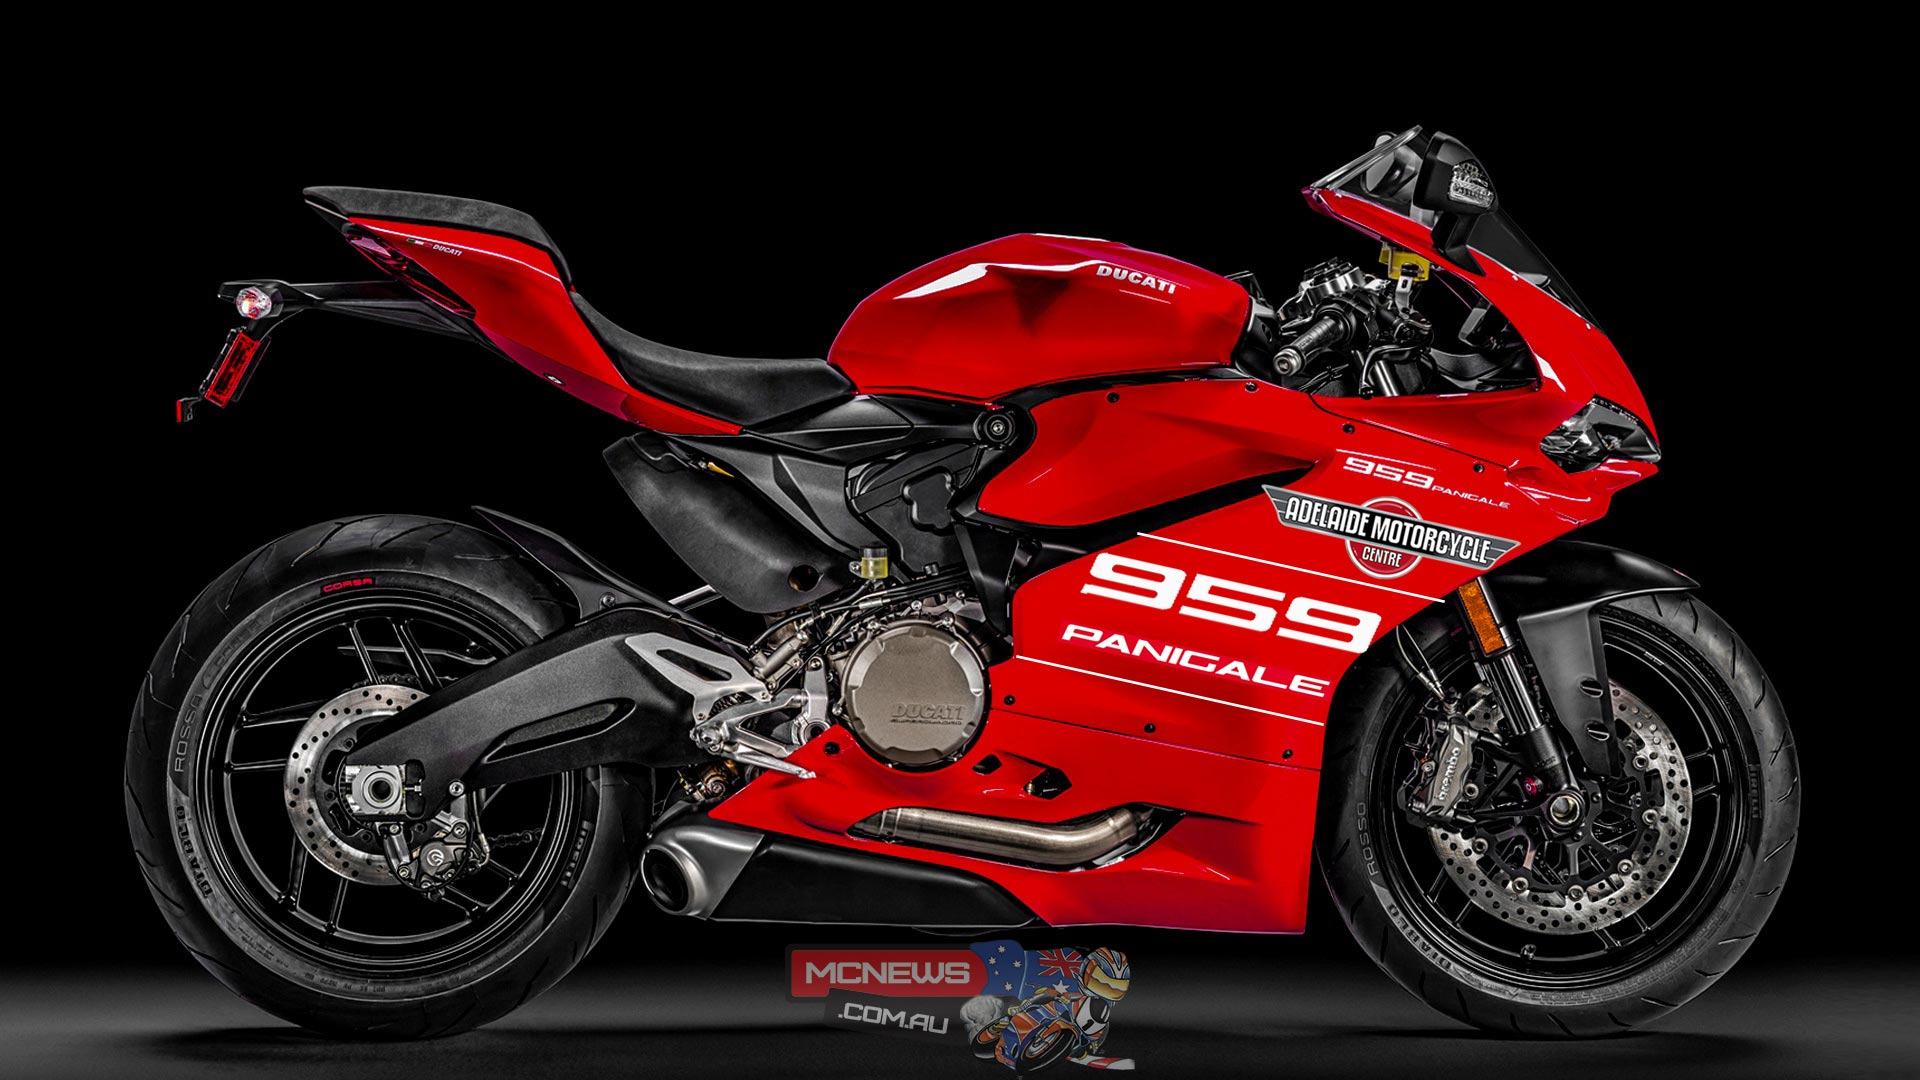 Adelaide Motorcycle Centre, the Official Ducati Dealer in South Australia, have decided to build a Ducati 959 Panigale race bike for the 2016 season.